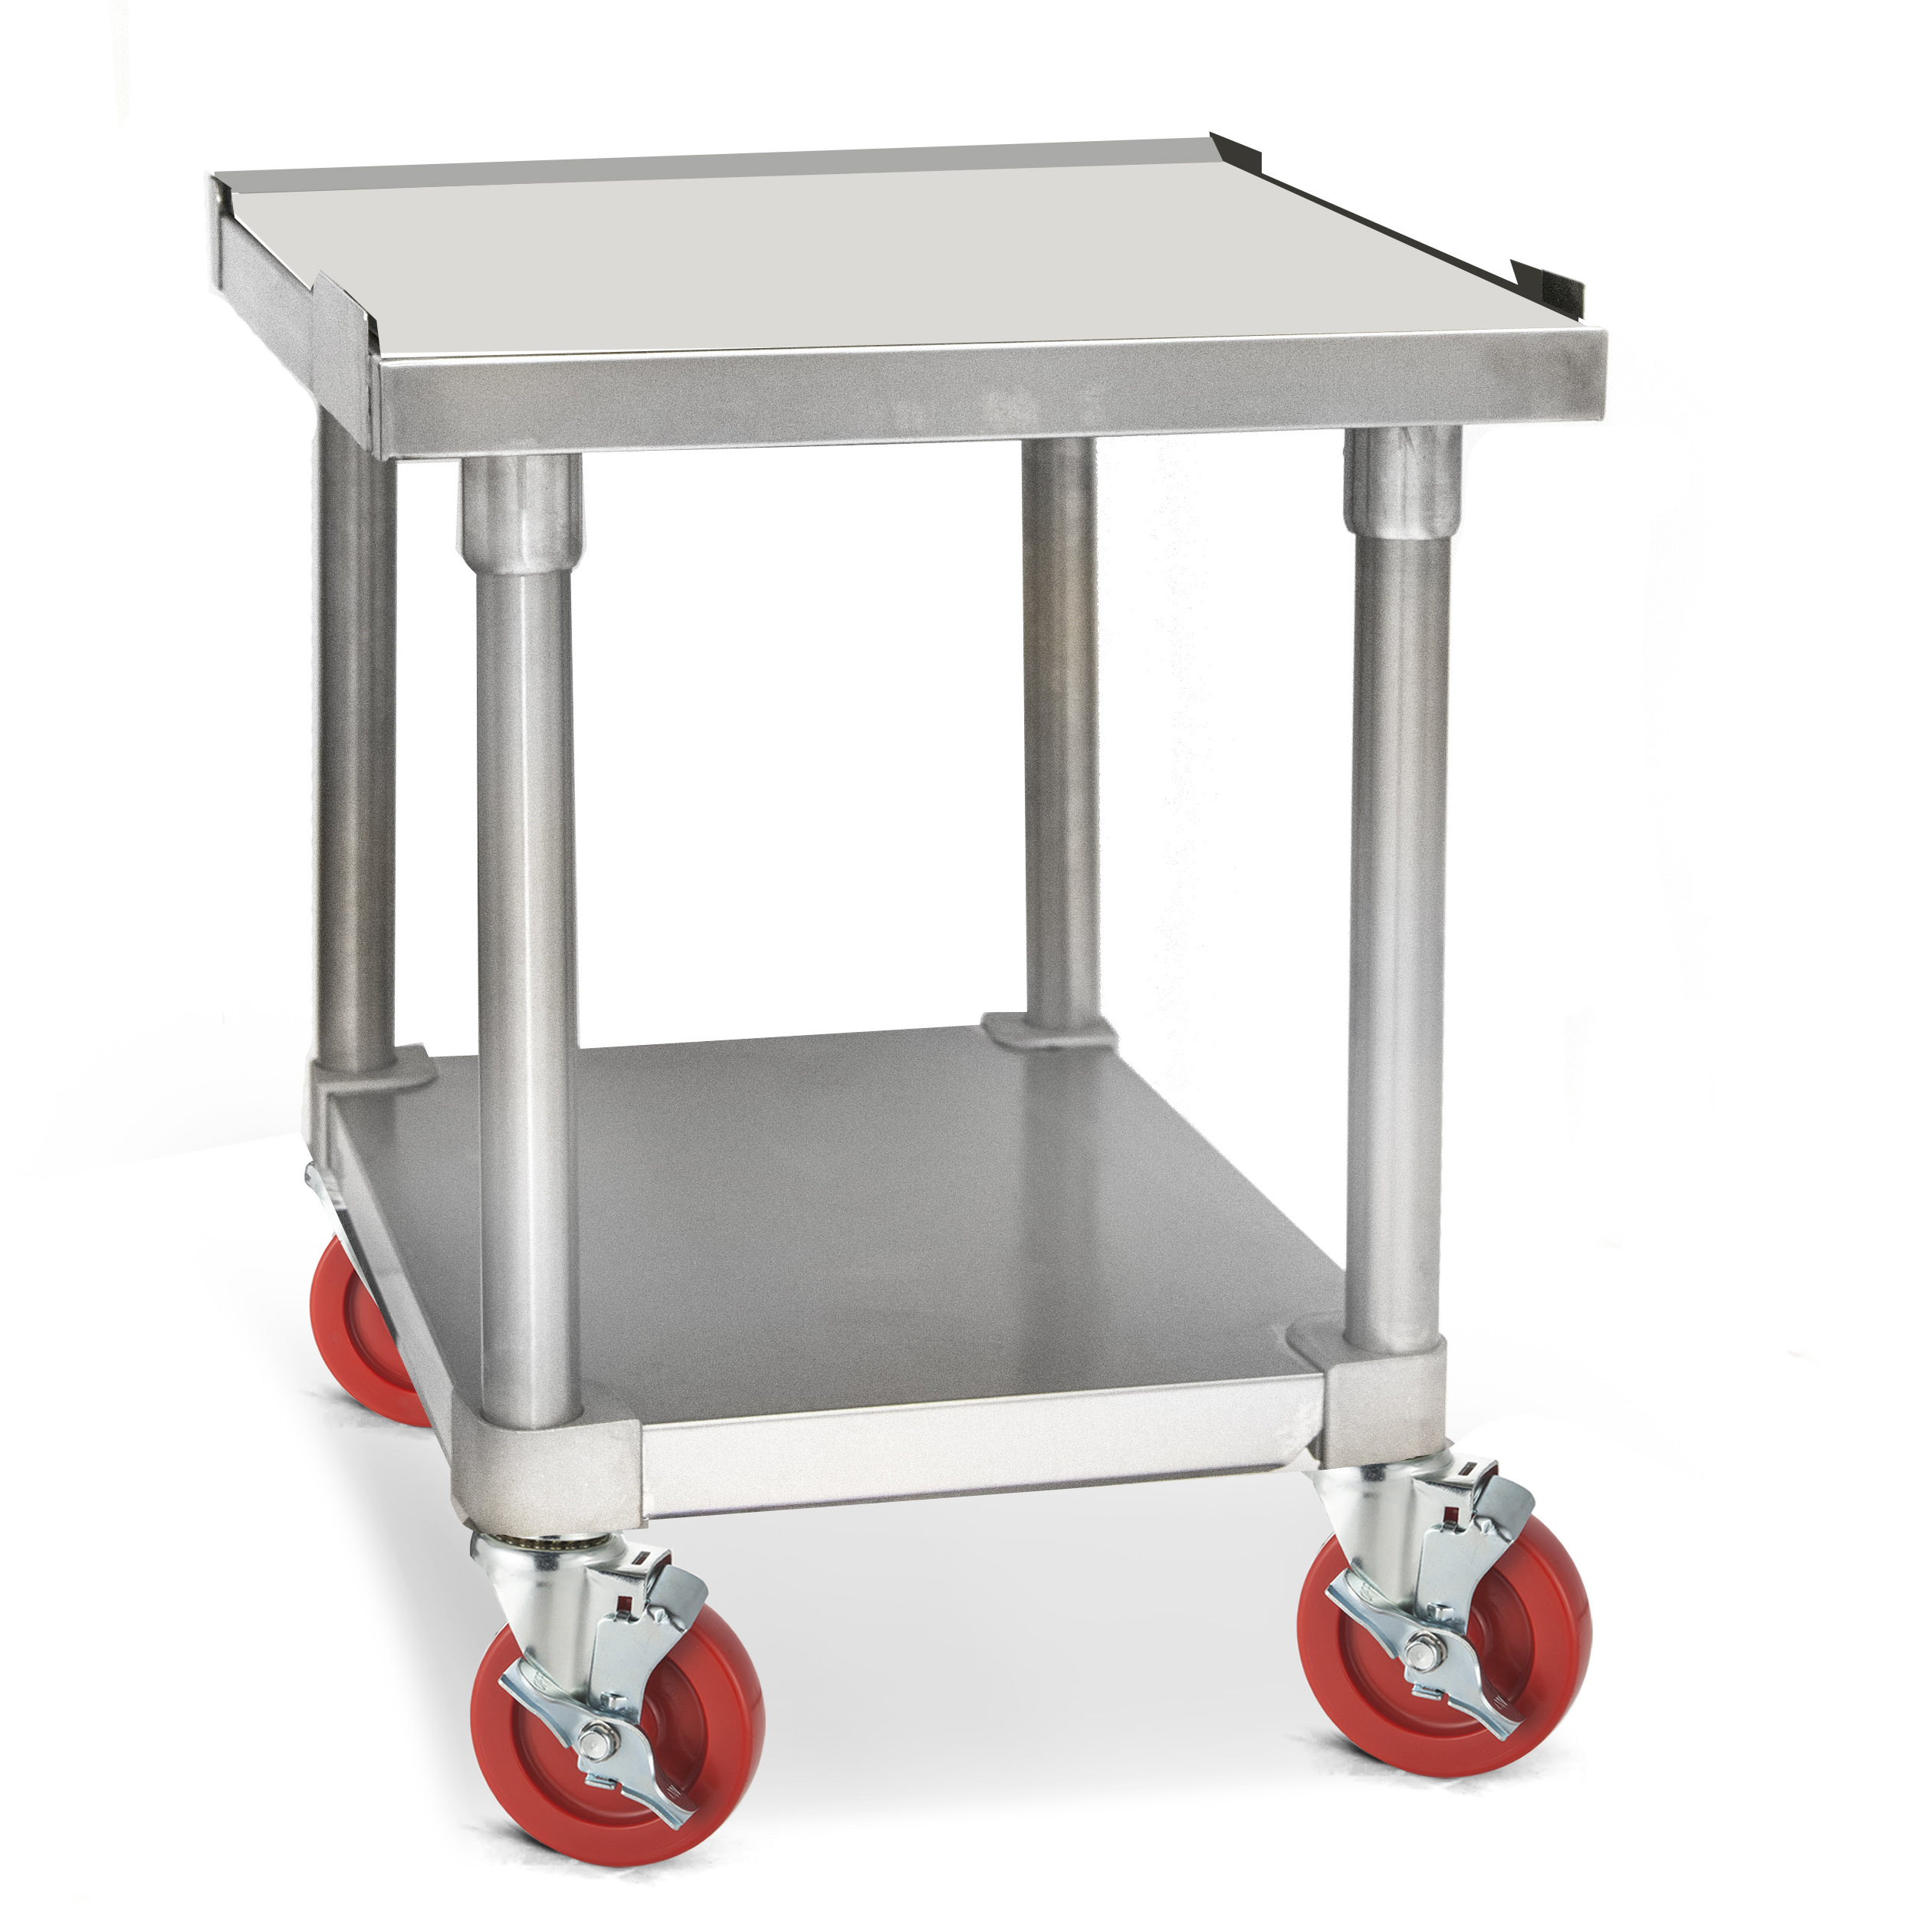 American Range VES-20 equipment stand, for countertop cooking